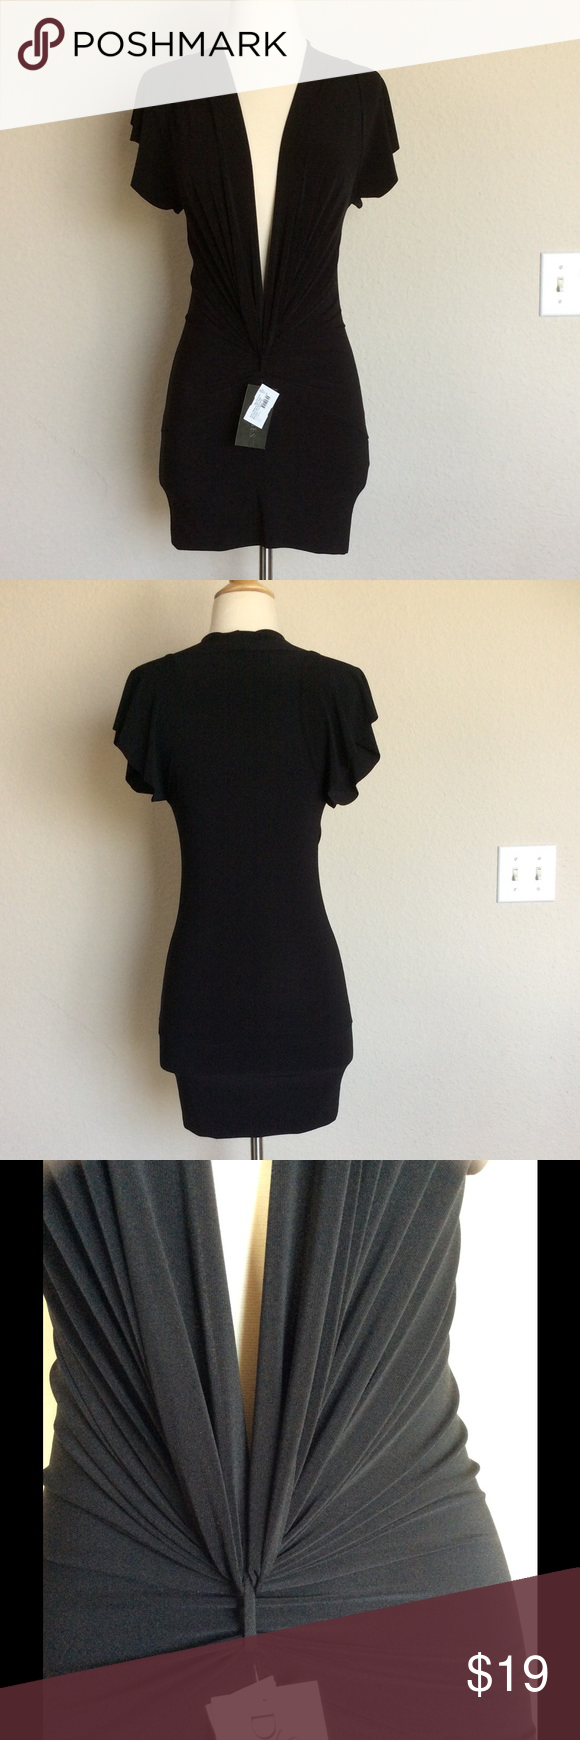 New, FD sexy black party dress - small